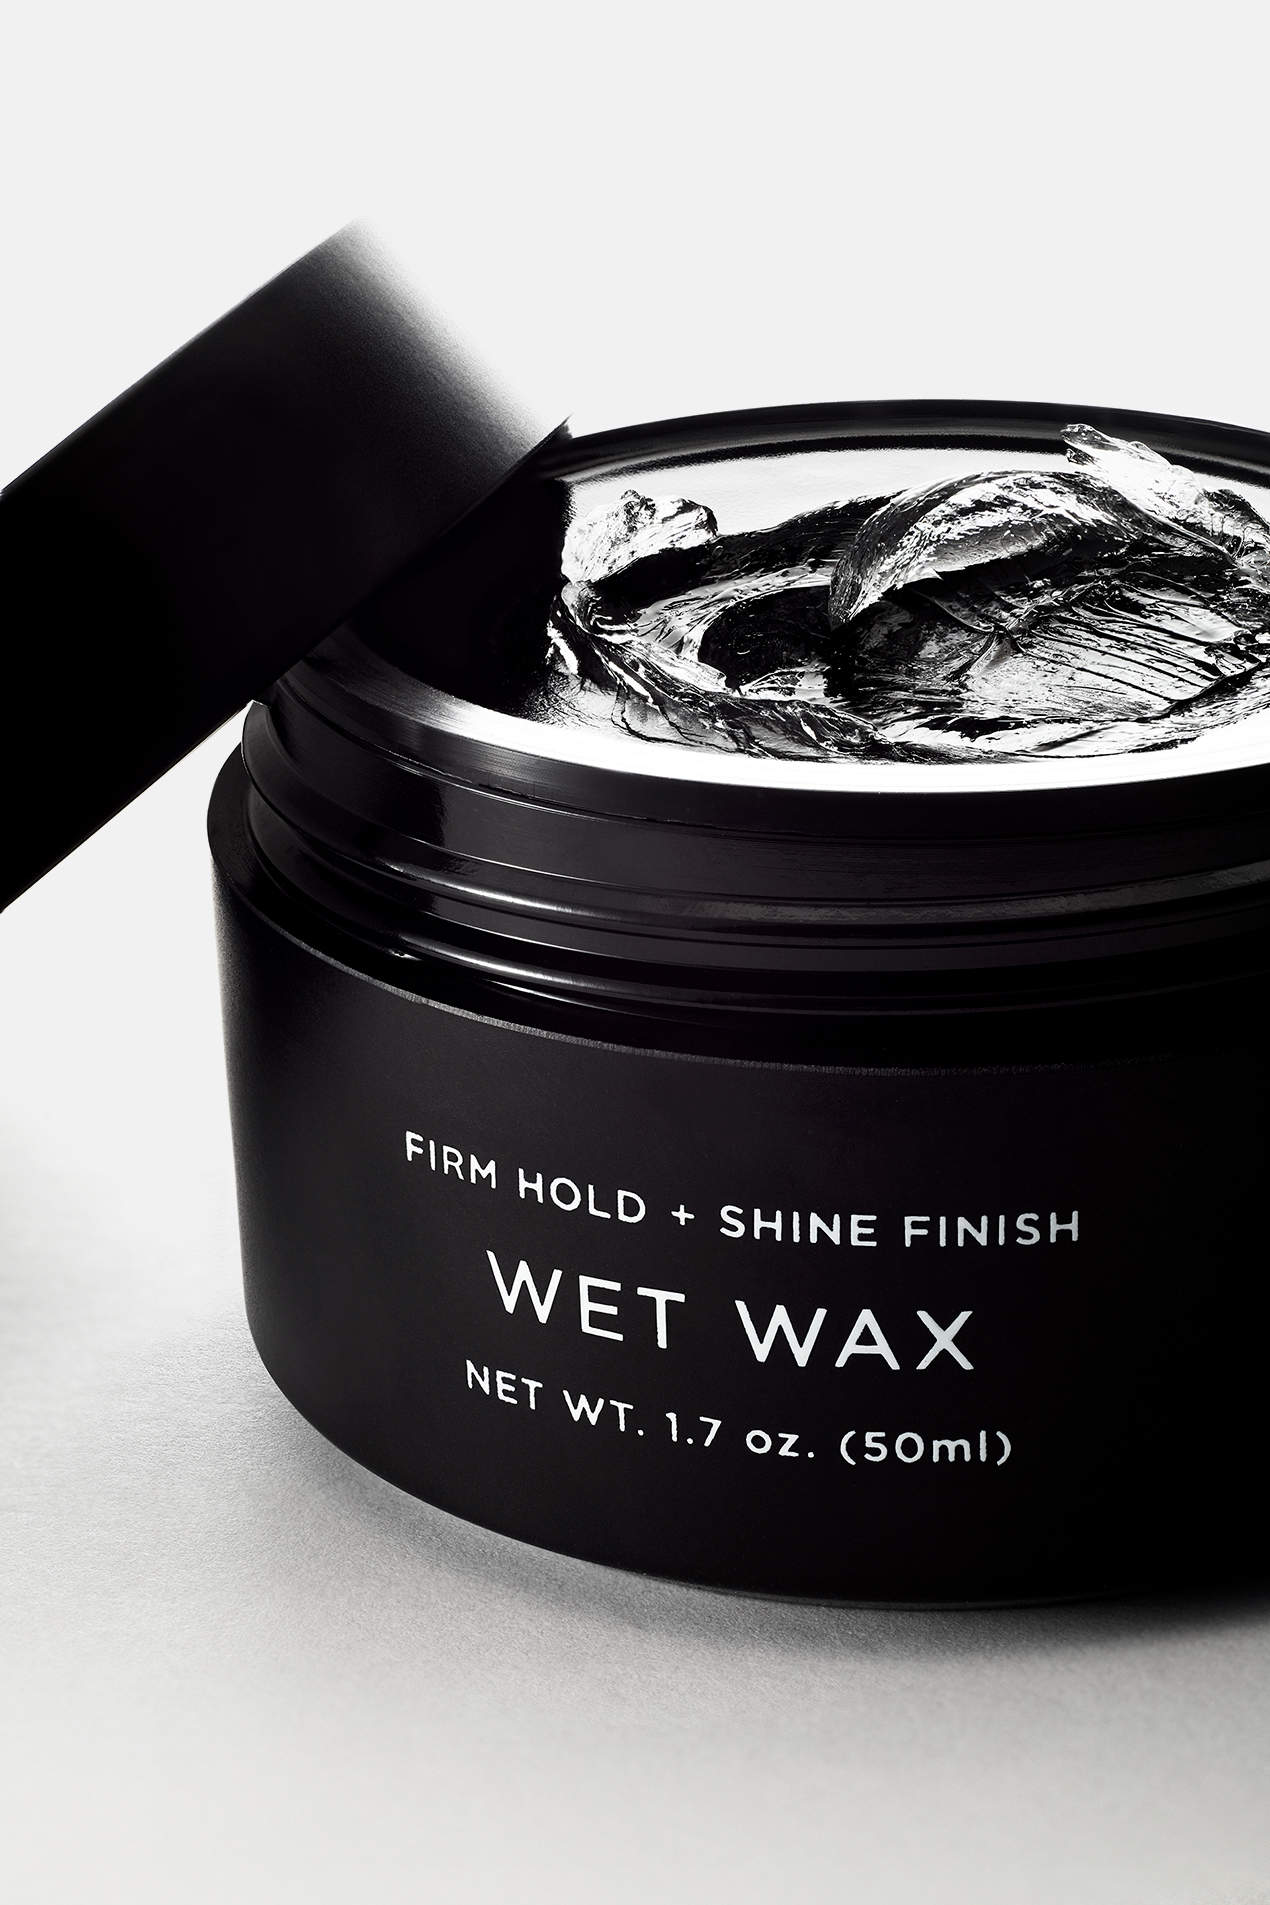 haircare_wetwax_exposed.jpg